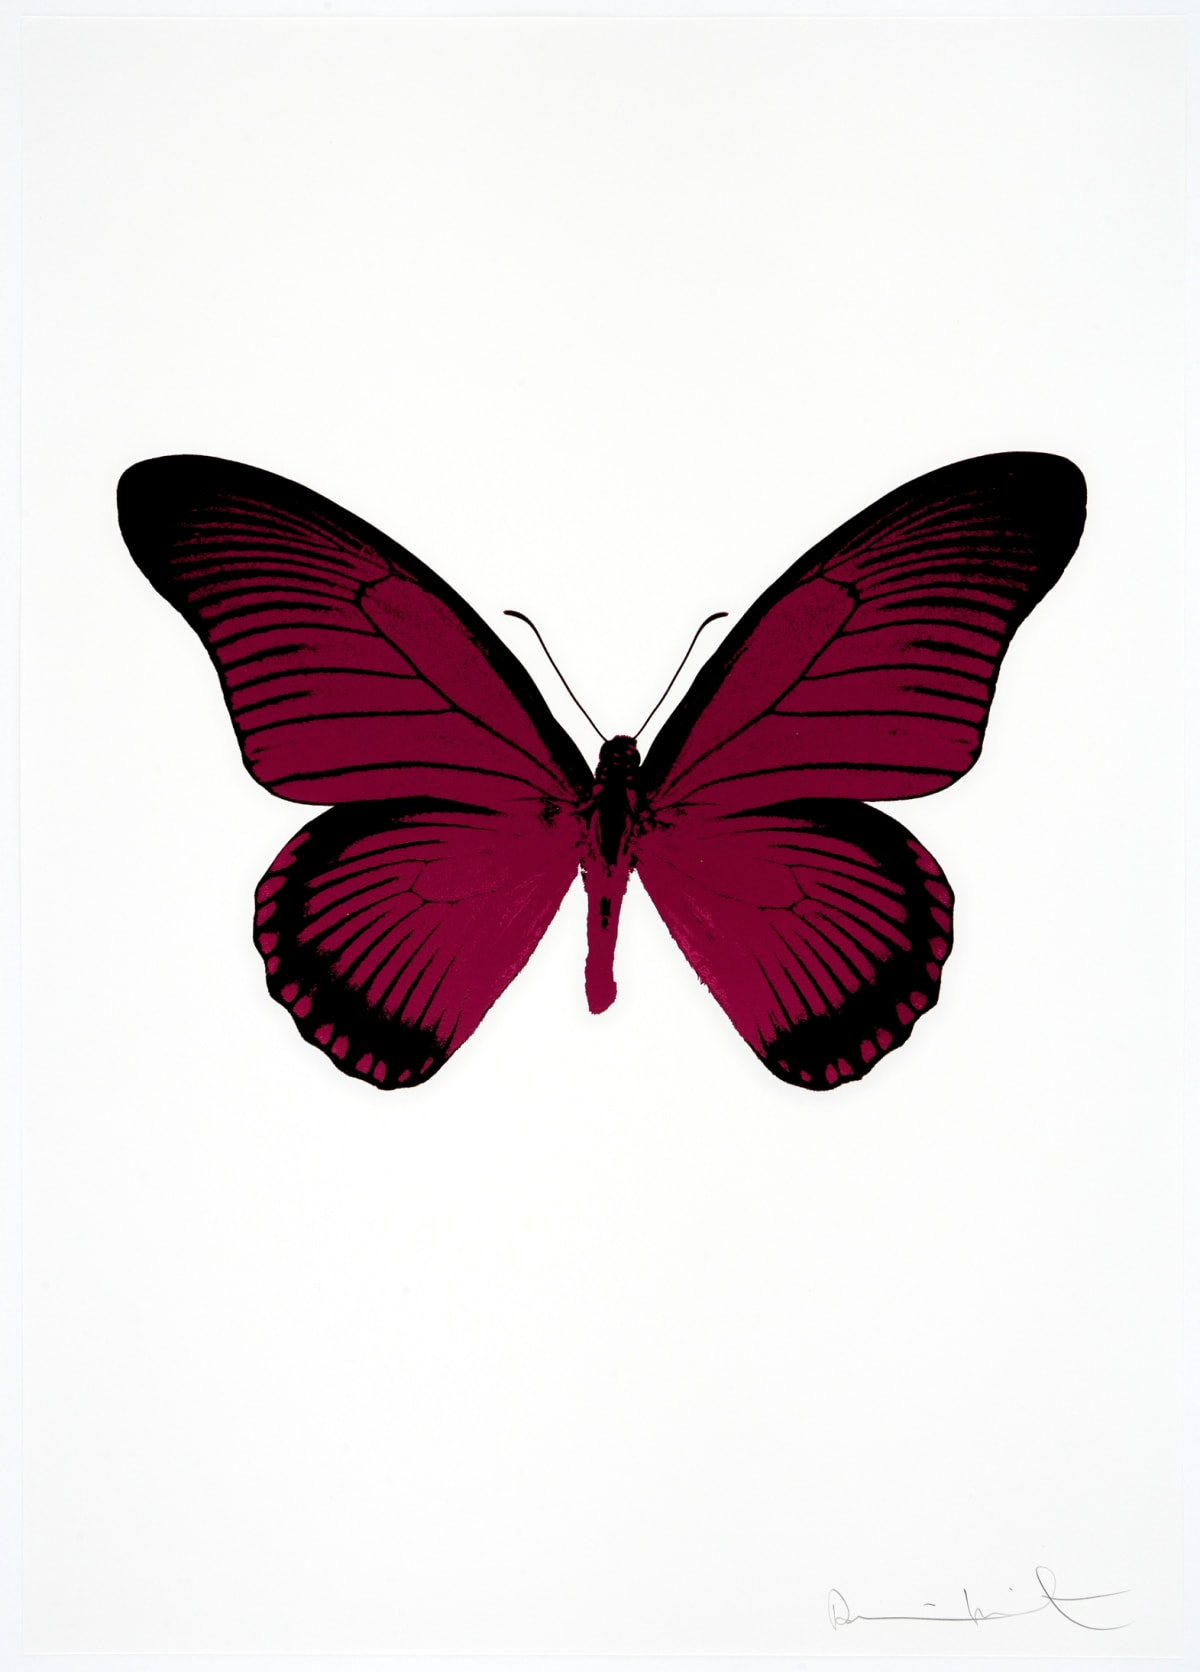 Damien Hirst The Souls IV - Fuchsia Pink/Raven Black Damien Hirst butterfly foil print for sale Damien Hirst print for sale , 2010 2 colour foil block on 300gsm Arches 88 archival paper. Signed and numbered. Published by Paul Stolper and Other Criteria 72 x 51cm OC7986 / 1418-9 Edition of 15